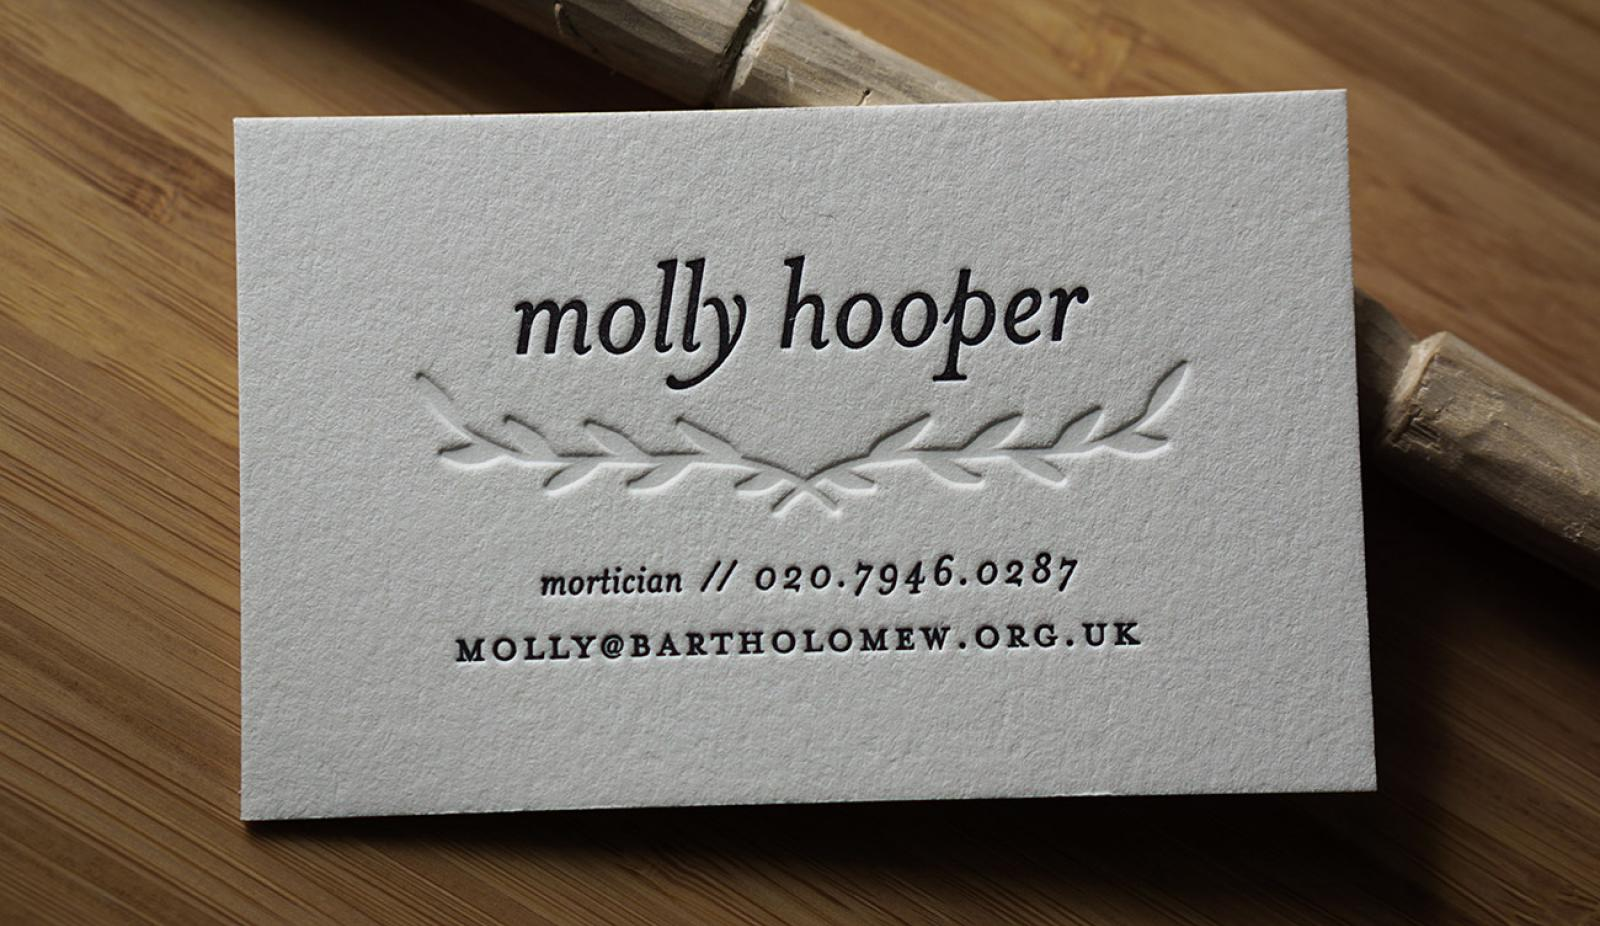 Fine how to make letterpress business cards images business card letterpress business cards business card tips colourmoves